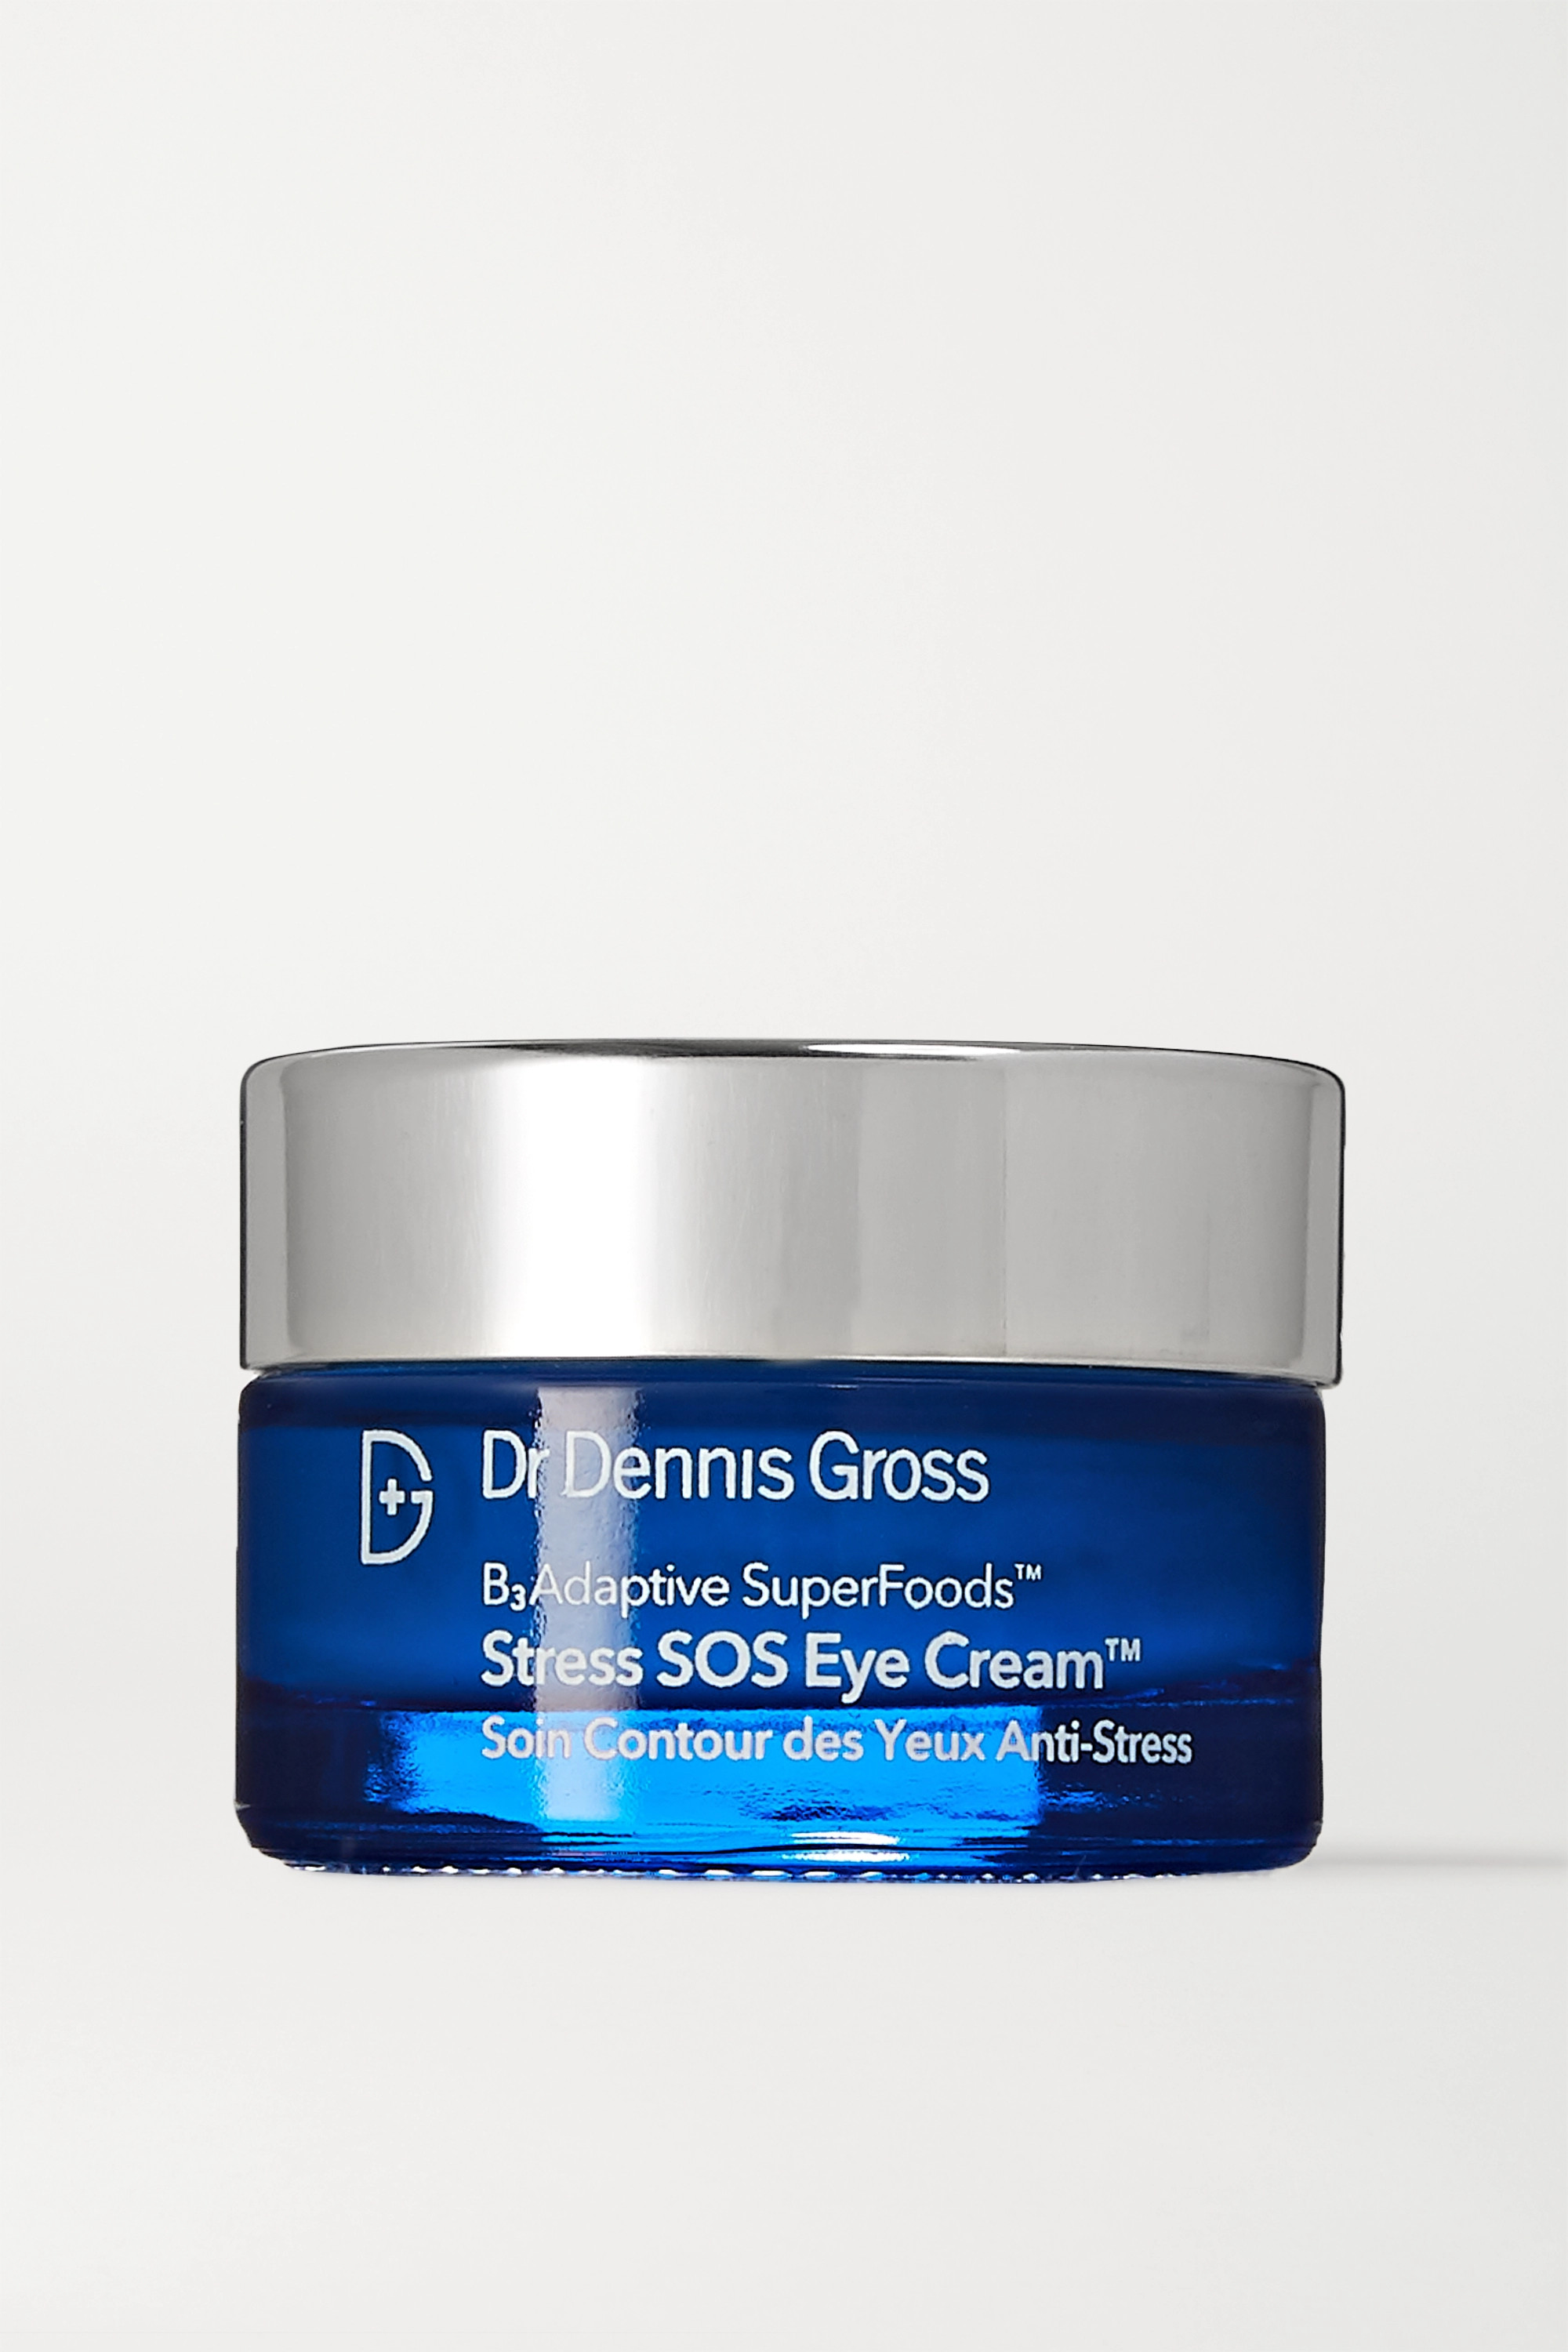 Dr. Dennis Gross Skincare B³Adaptive SuperFoods Stress SOS Eye Cream, 15ml